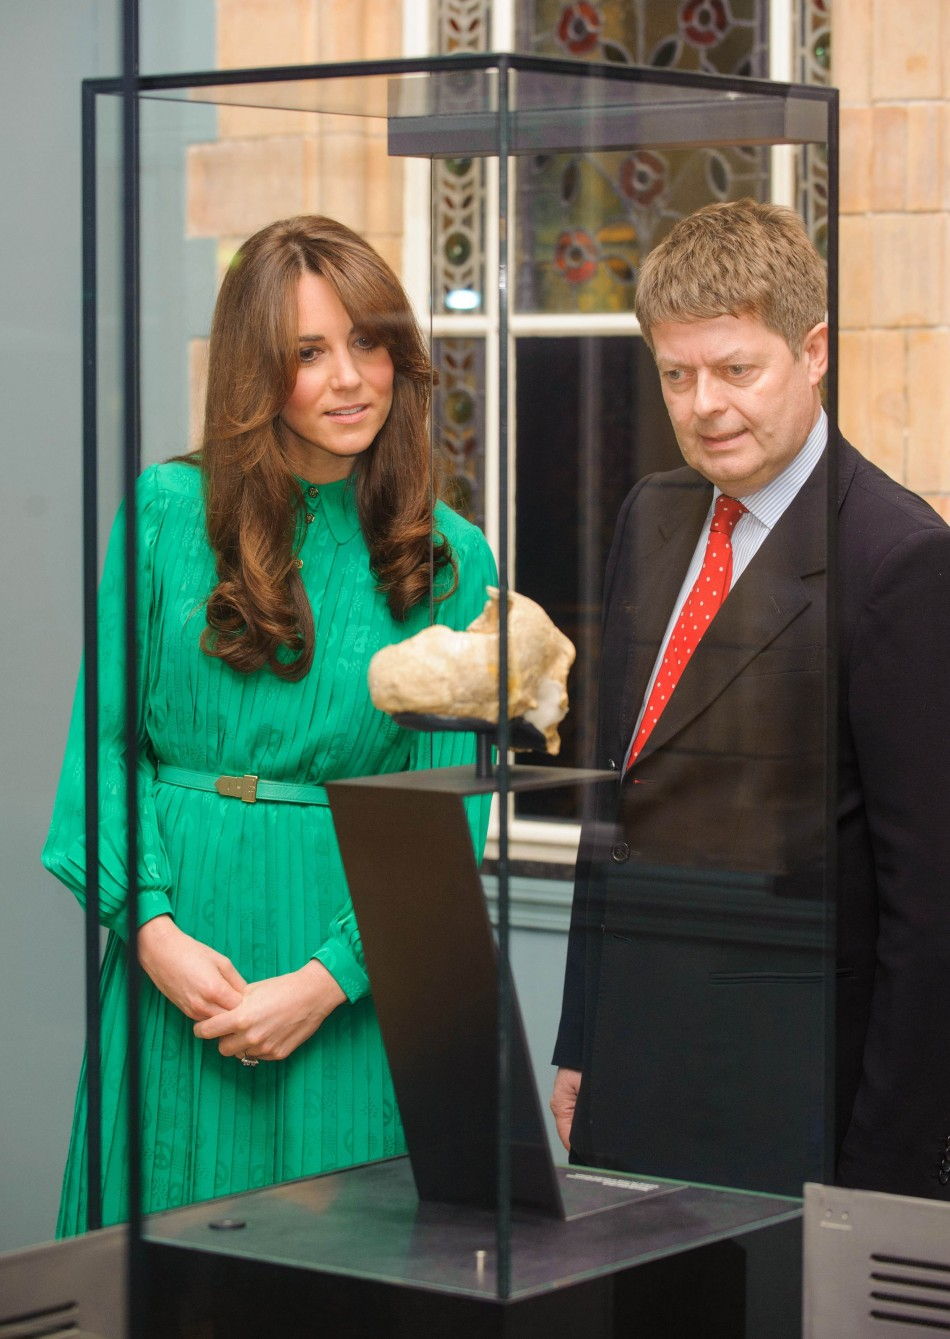 Duchess of Cambridge and the Director of the Natural History Museum Michael Dixon view an exhibit at the Natural History Museum, in central London